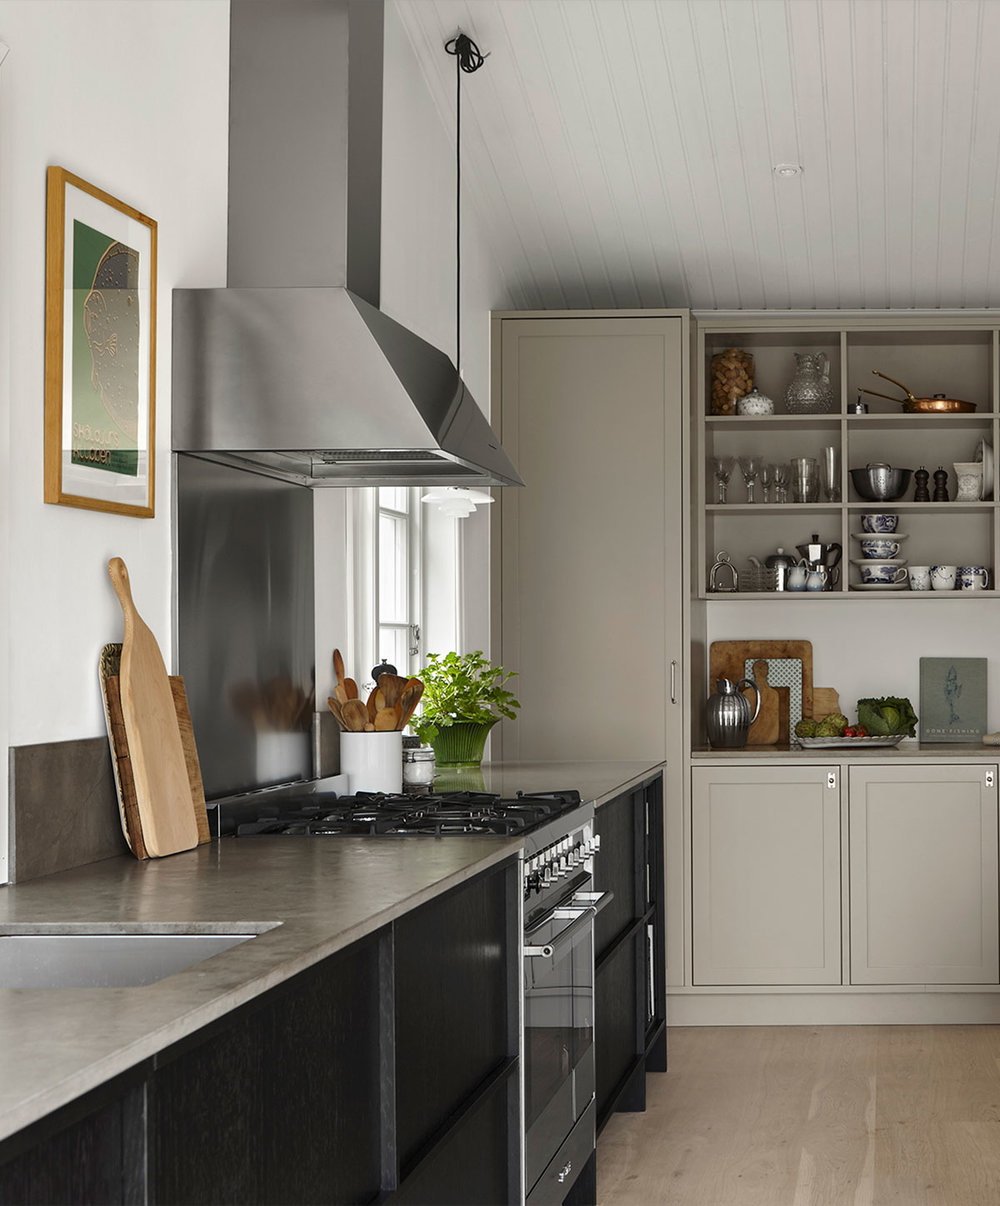 Johanna Bradford kitchen, blog inspiration about the grey kitchen